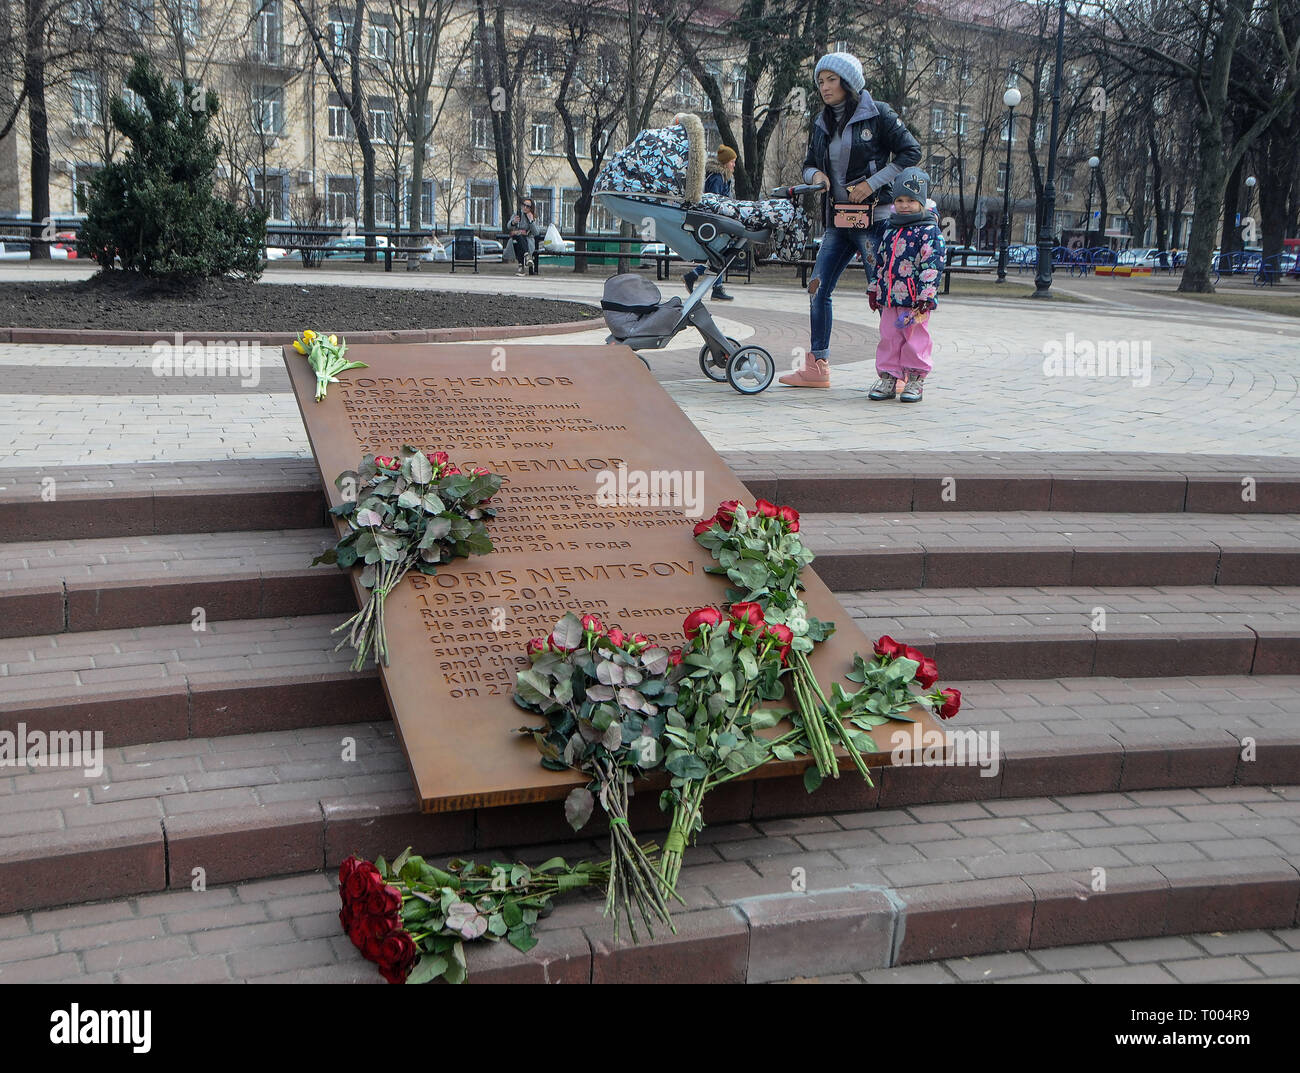 Kiev, Ukraine. 15th March 2019. A mother with her kids seen walking by the Boris Nemtsov plaque inside the square named after his name during the opening day. The Russian opposition leader Boris Nemtsov was killed 4 years ago in the center of Moscow on February 27, 2015. In the murder case, five Chechen natives were convicted and found guilty of the crime. Credit: SOPA Images Limited/Alamy Live News - Stock Image